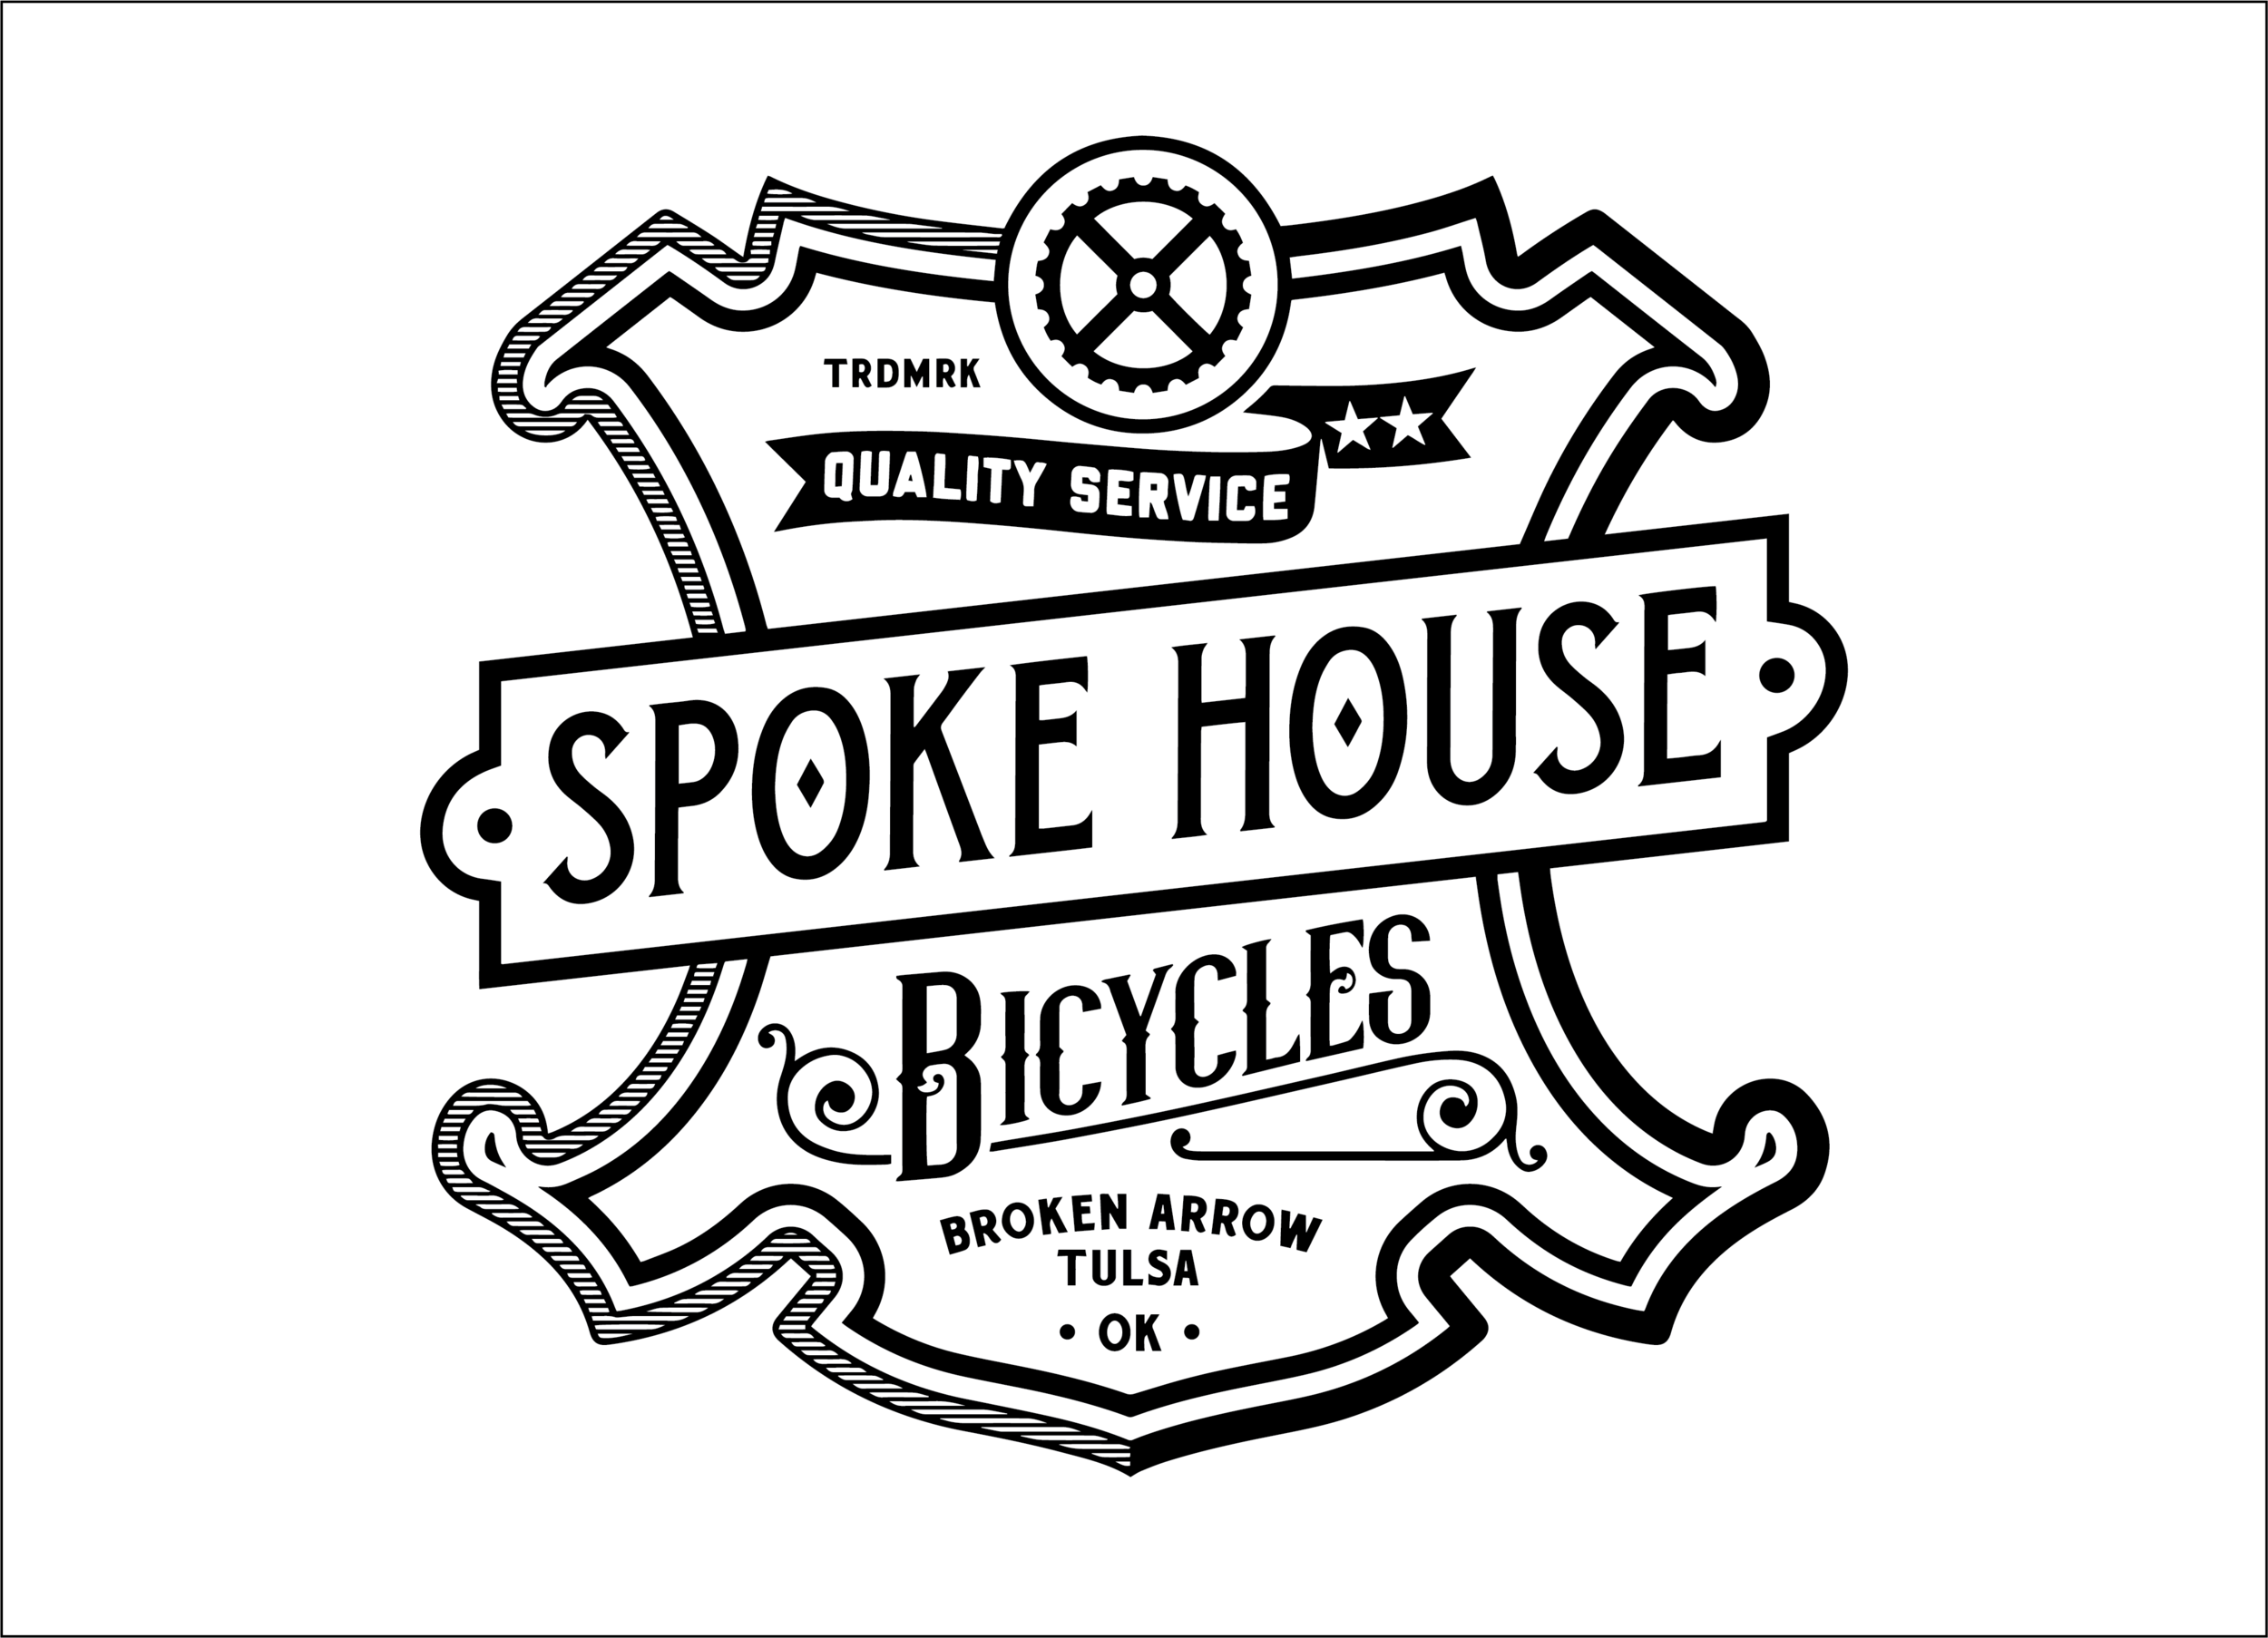 Spoke_House_New_2017_White_Back.png